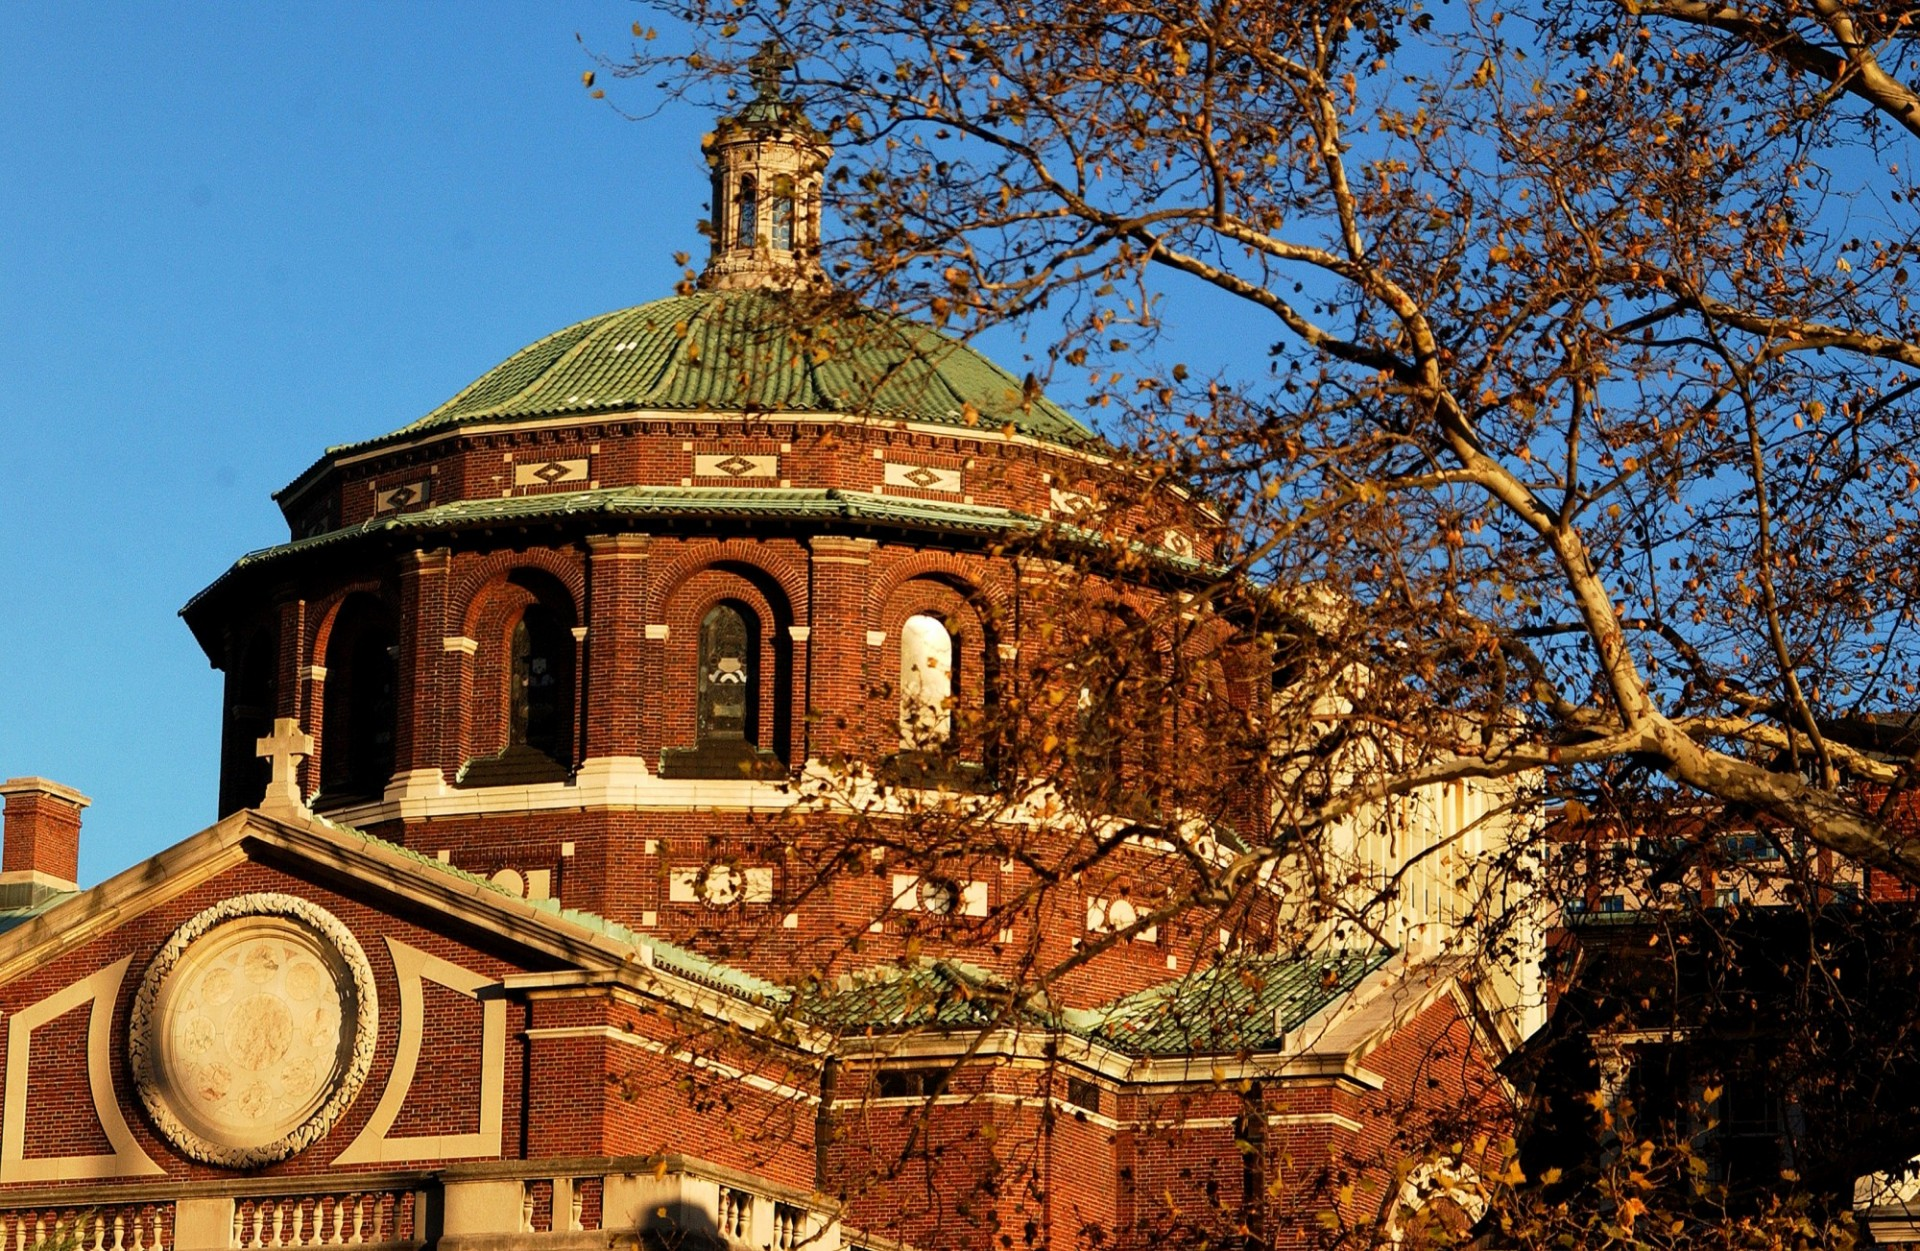 Exterior dome of St. Paul's Chapel at Columbia University.